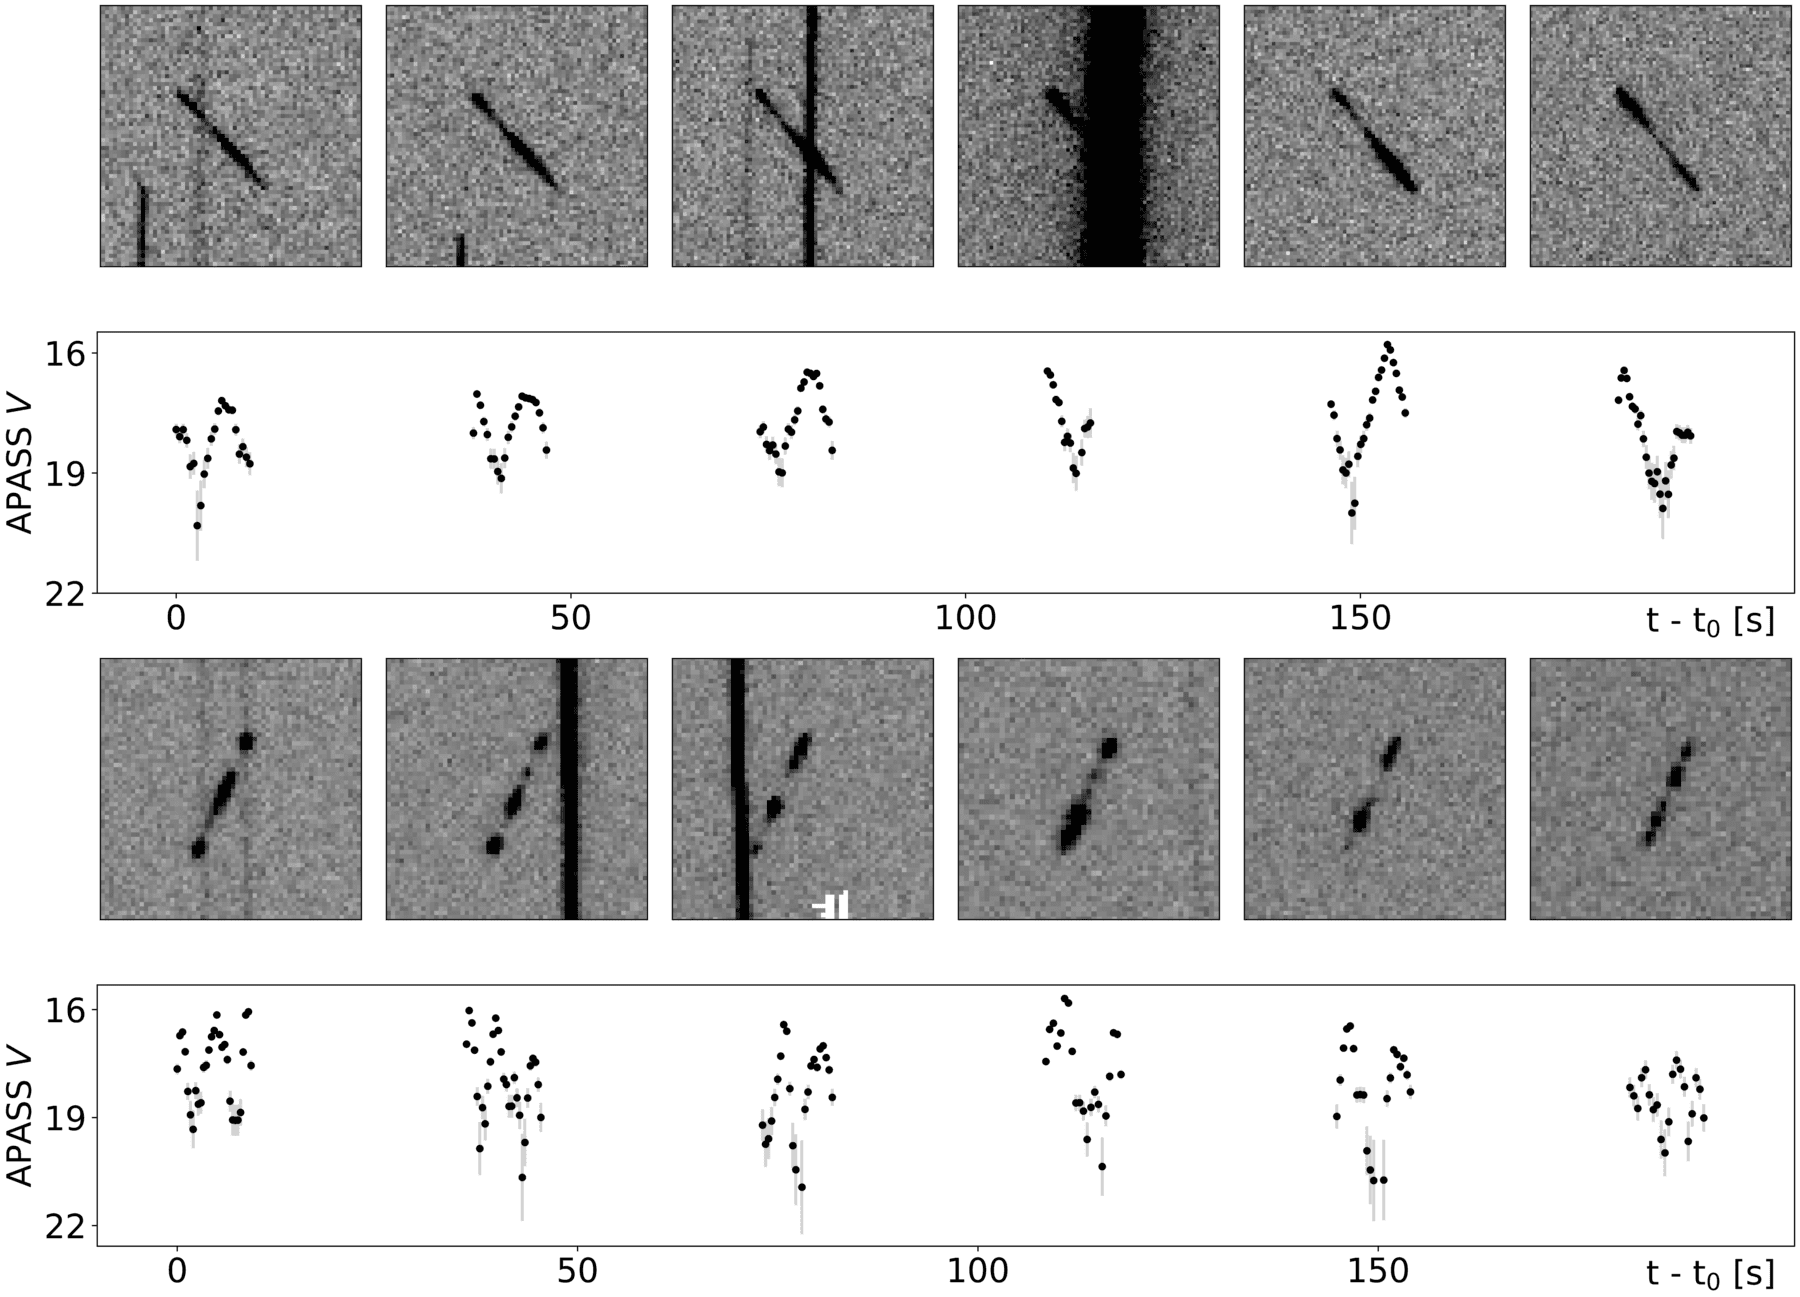 Examples of light curves extracted from the survey images for faint debris tracks. Owing to the strategies employed by the astronomers, stars appear as near-vertical streaks in the image thumbnails, while the objects of interest manifest as short trails. A significant degree of brightness variation can be seen for both examples. Credit: Blake et al., ASR, 2020